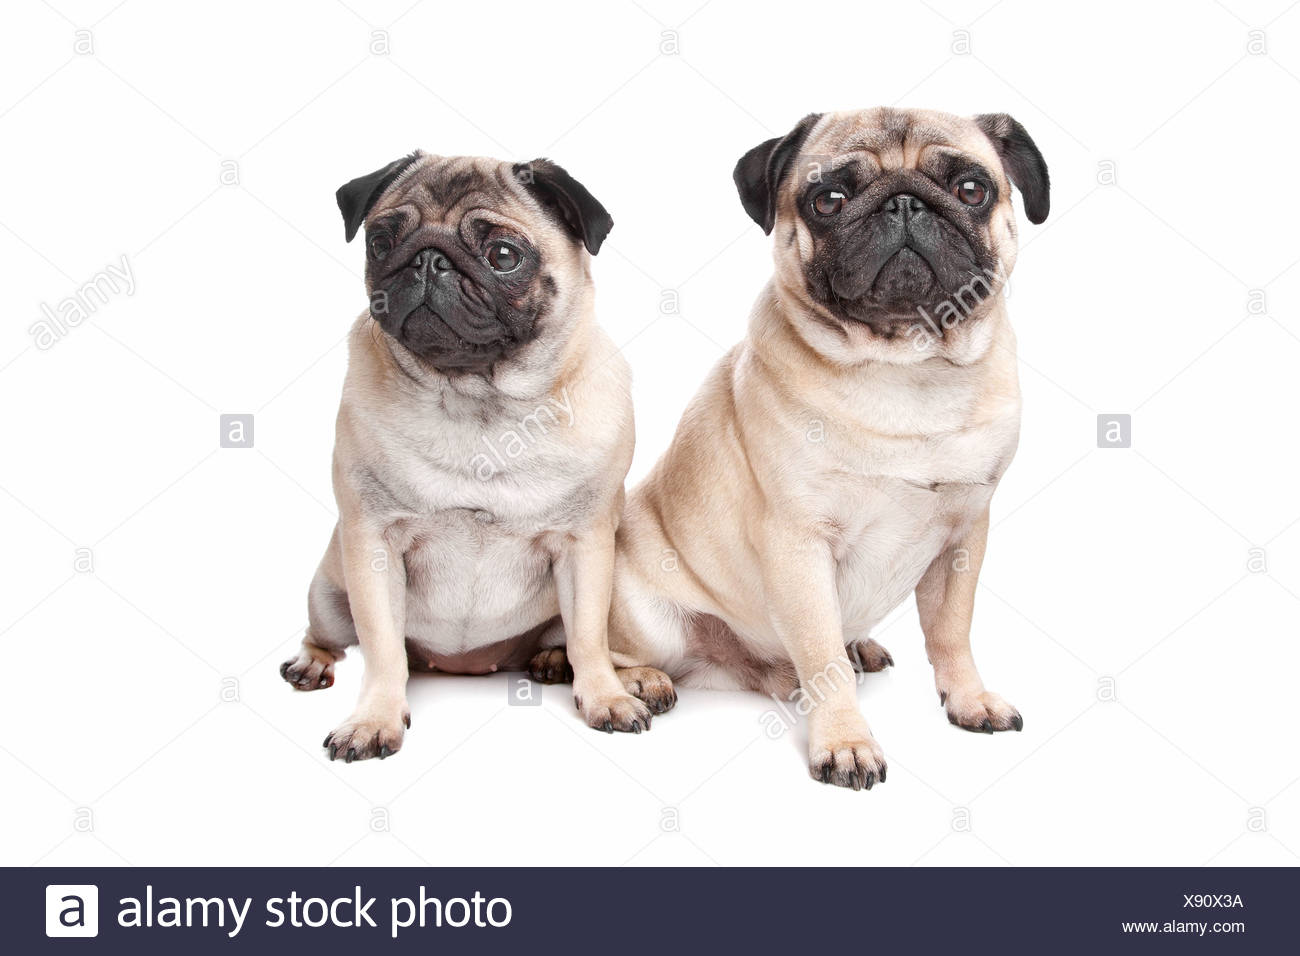 two pug dogs in front of a white background - Stock Image